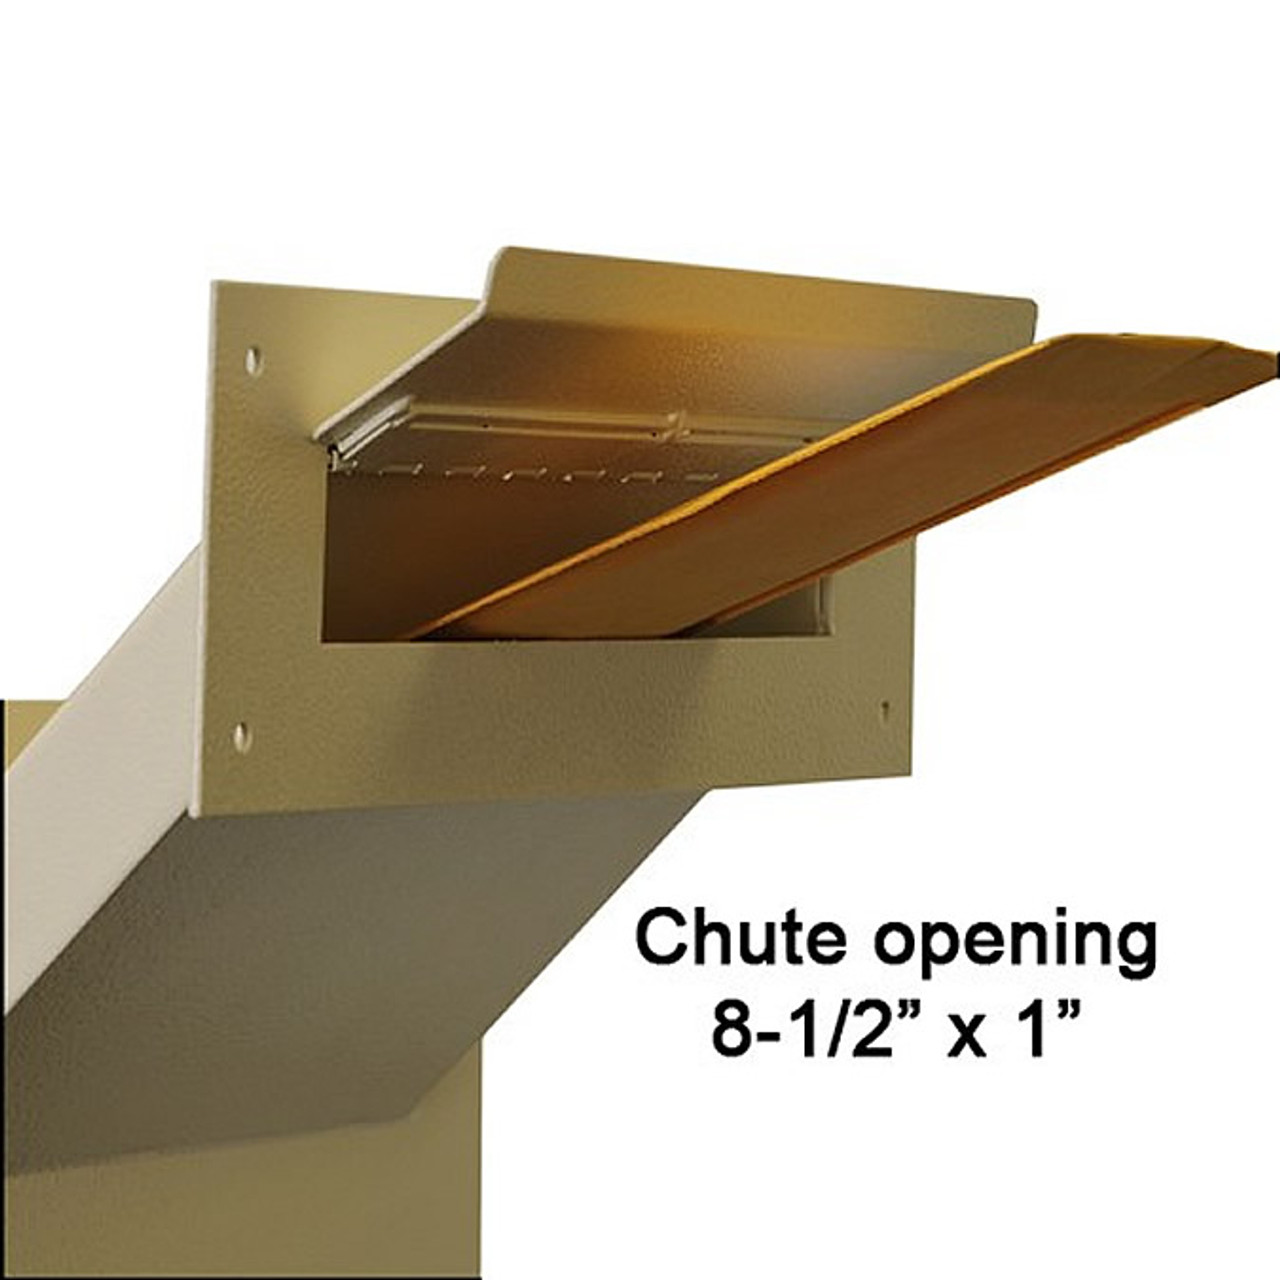 Adjustable Through the Wall Locking Drop Box with drop opening and envelope